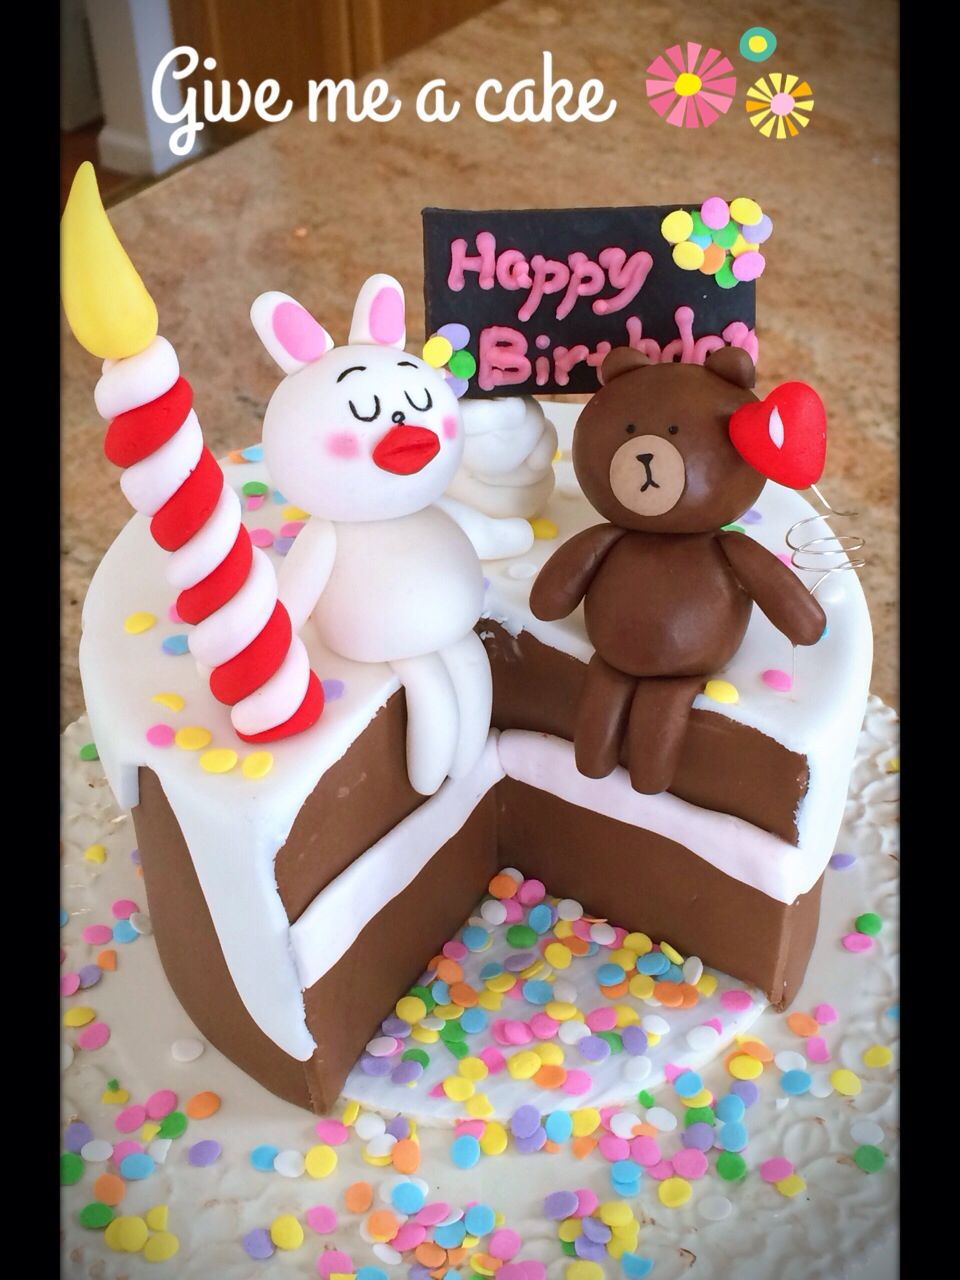 Line Camera Characters Birthday Cake Bunny And Bear From Give Me A Customized At Edison Nj Contact Email Sshennycgmail